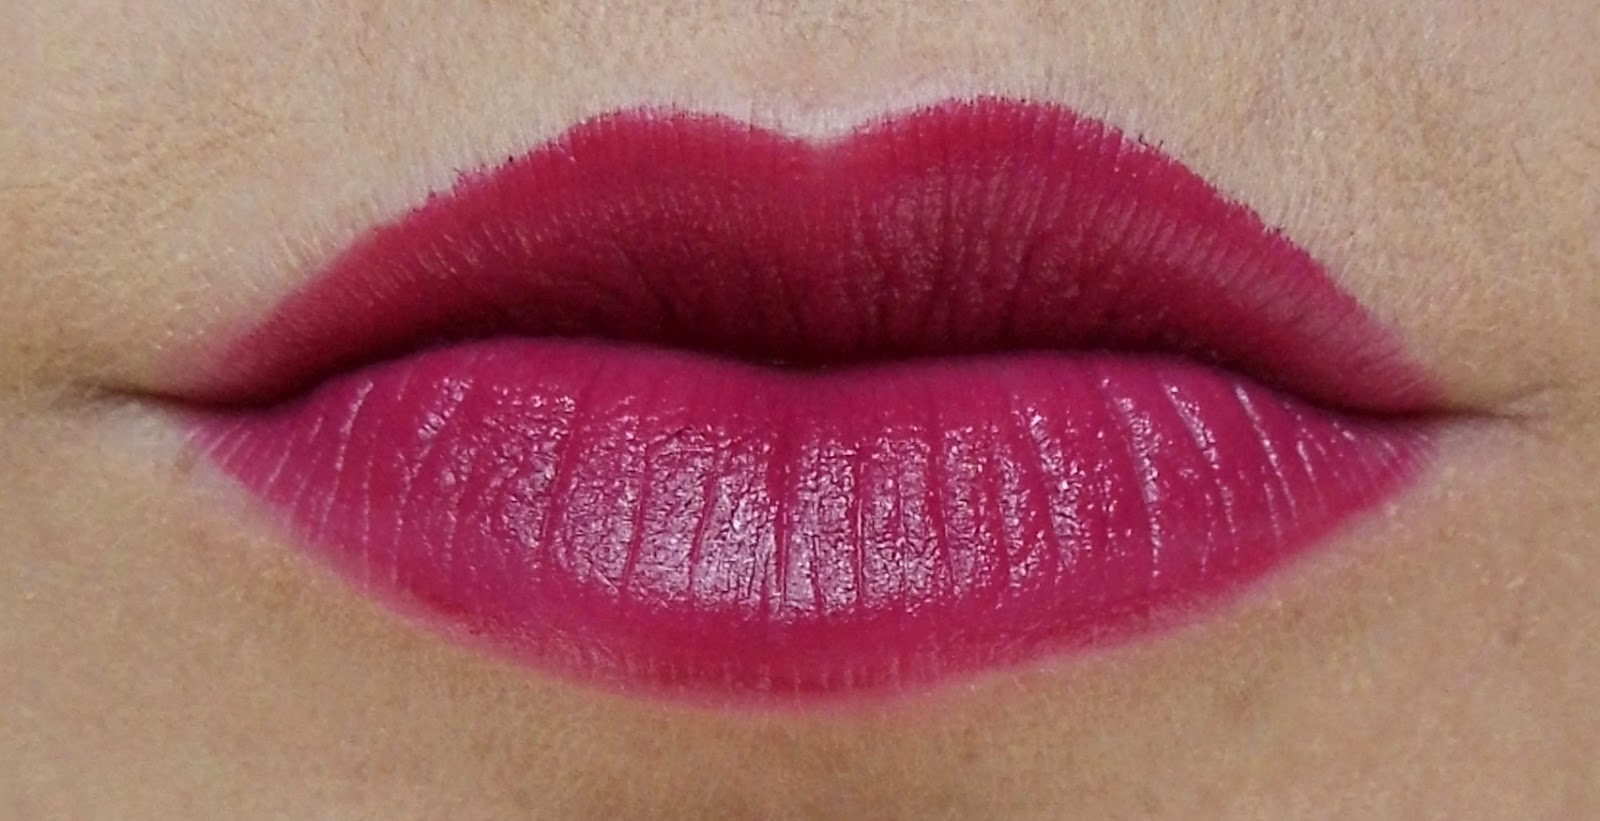 loreal-color-riche-laetitias-pure-red-lips-lipstick-swatch-shade-picture